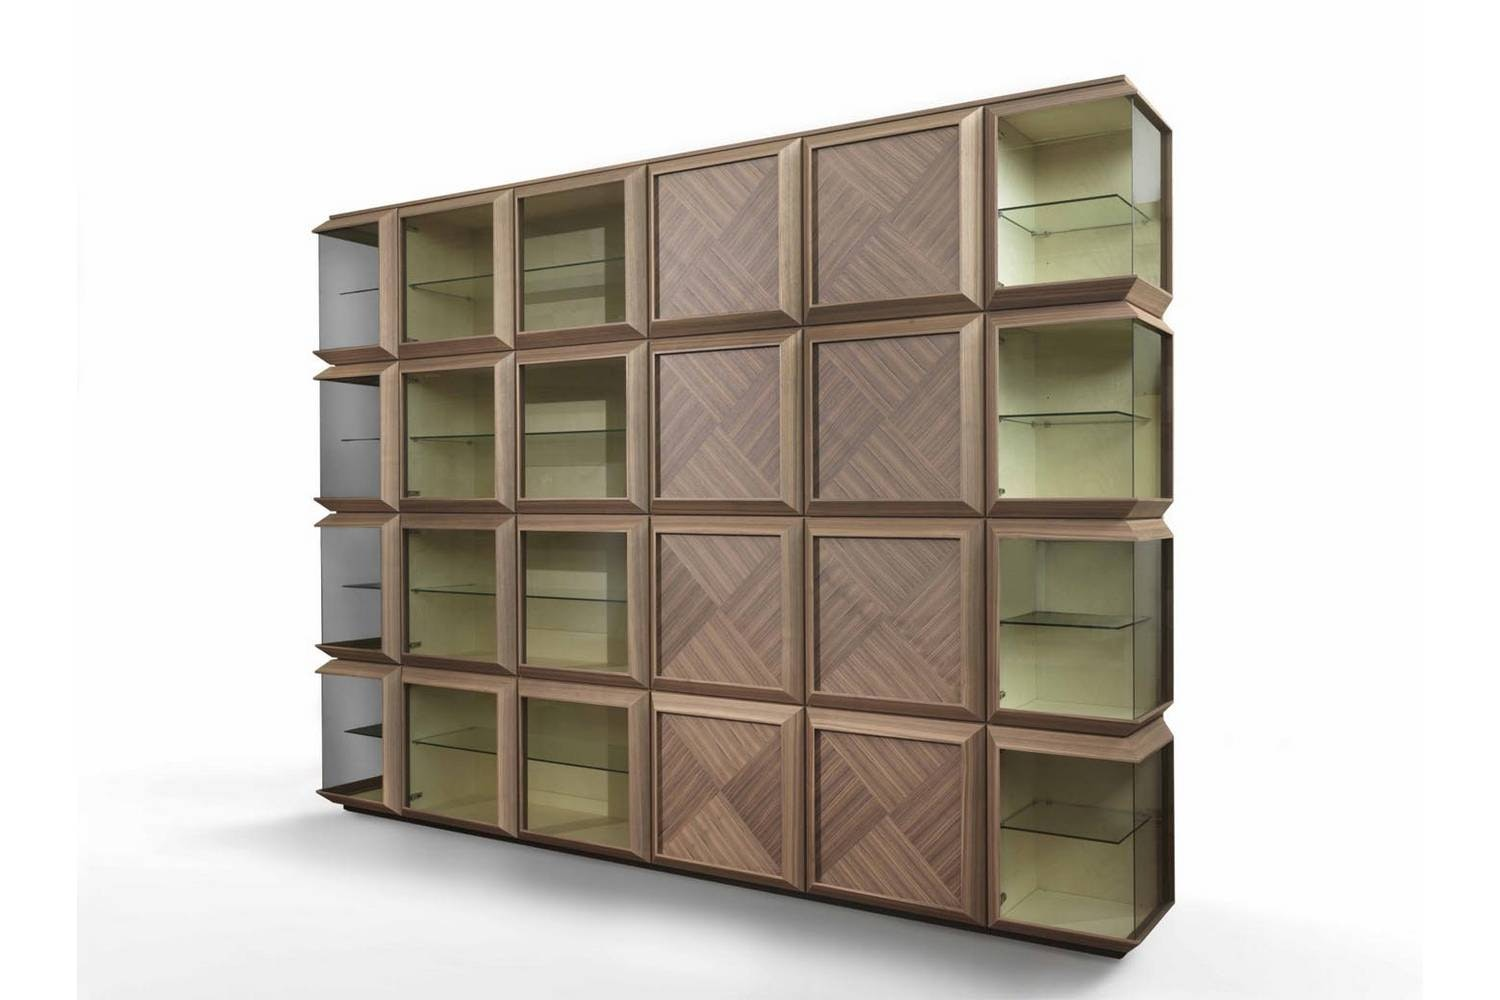 Kvadro Storage System by T. Colzani for Porada